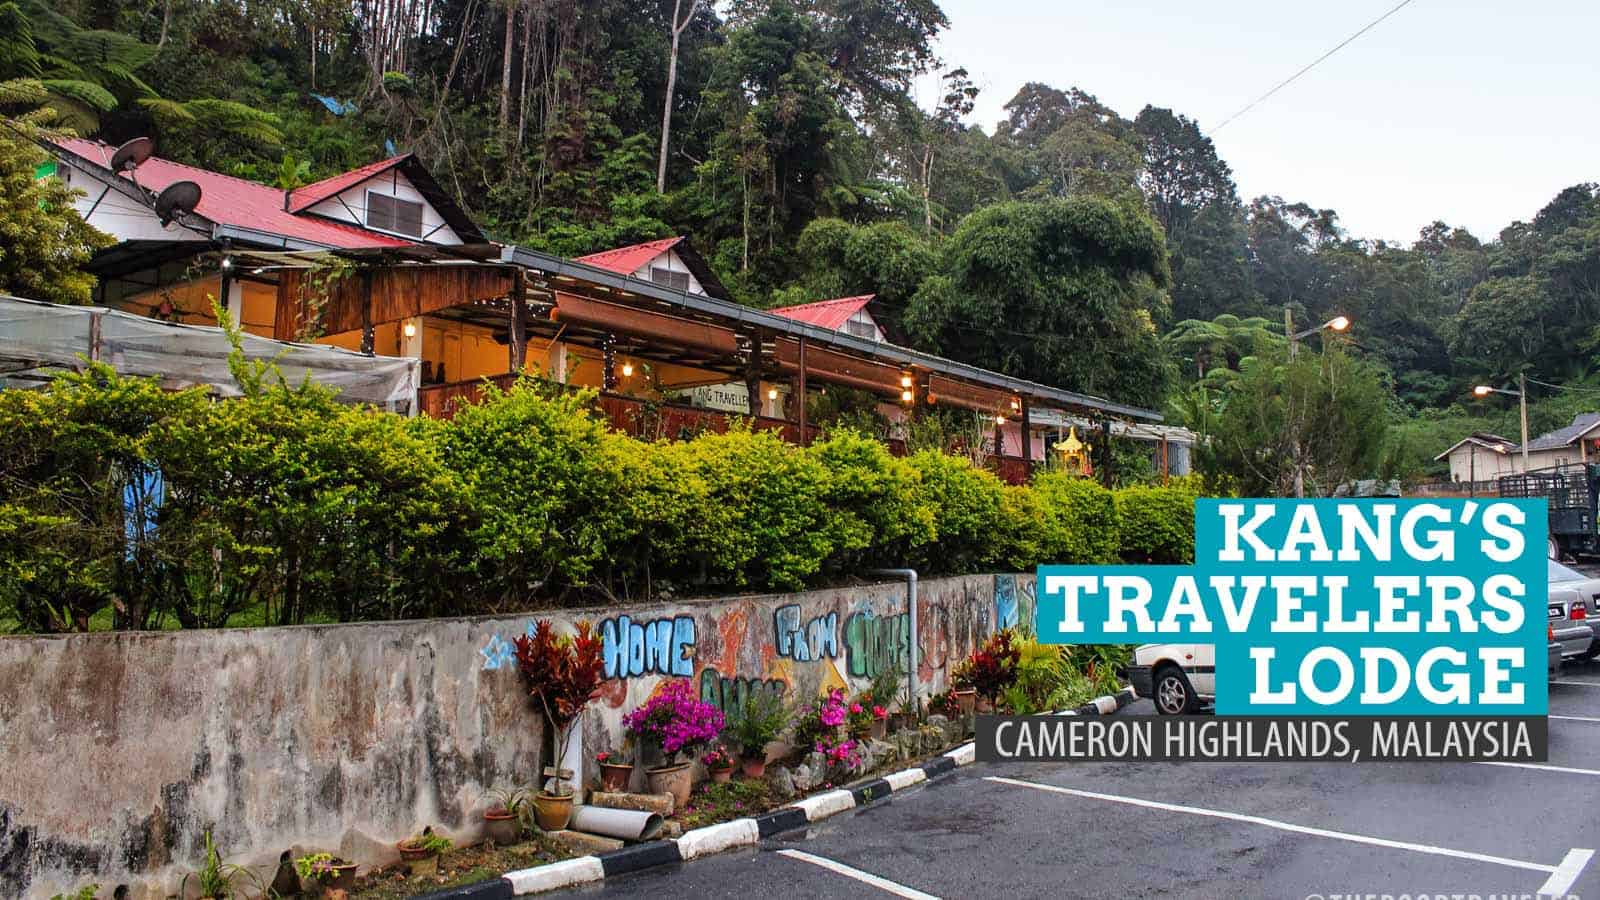 Kang Travelers Lodge (Daniel's Lodge): Where to Stay in Cameron Highlands, Malaysia